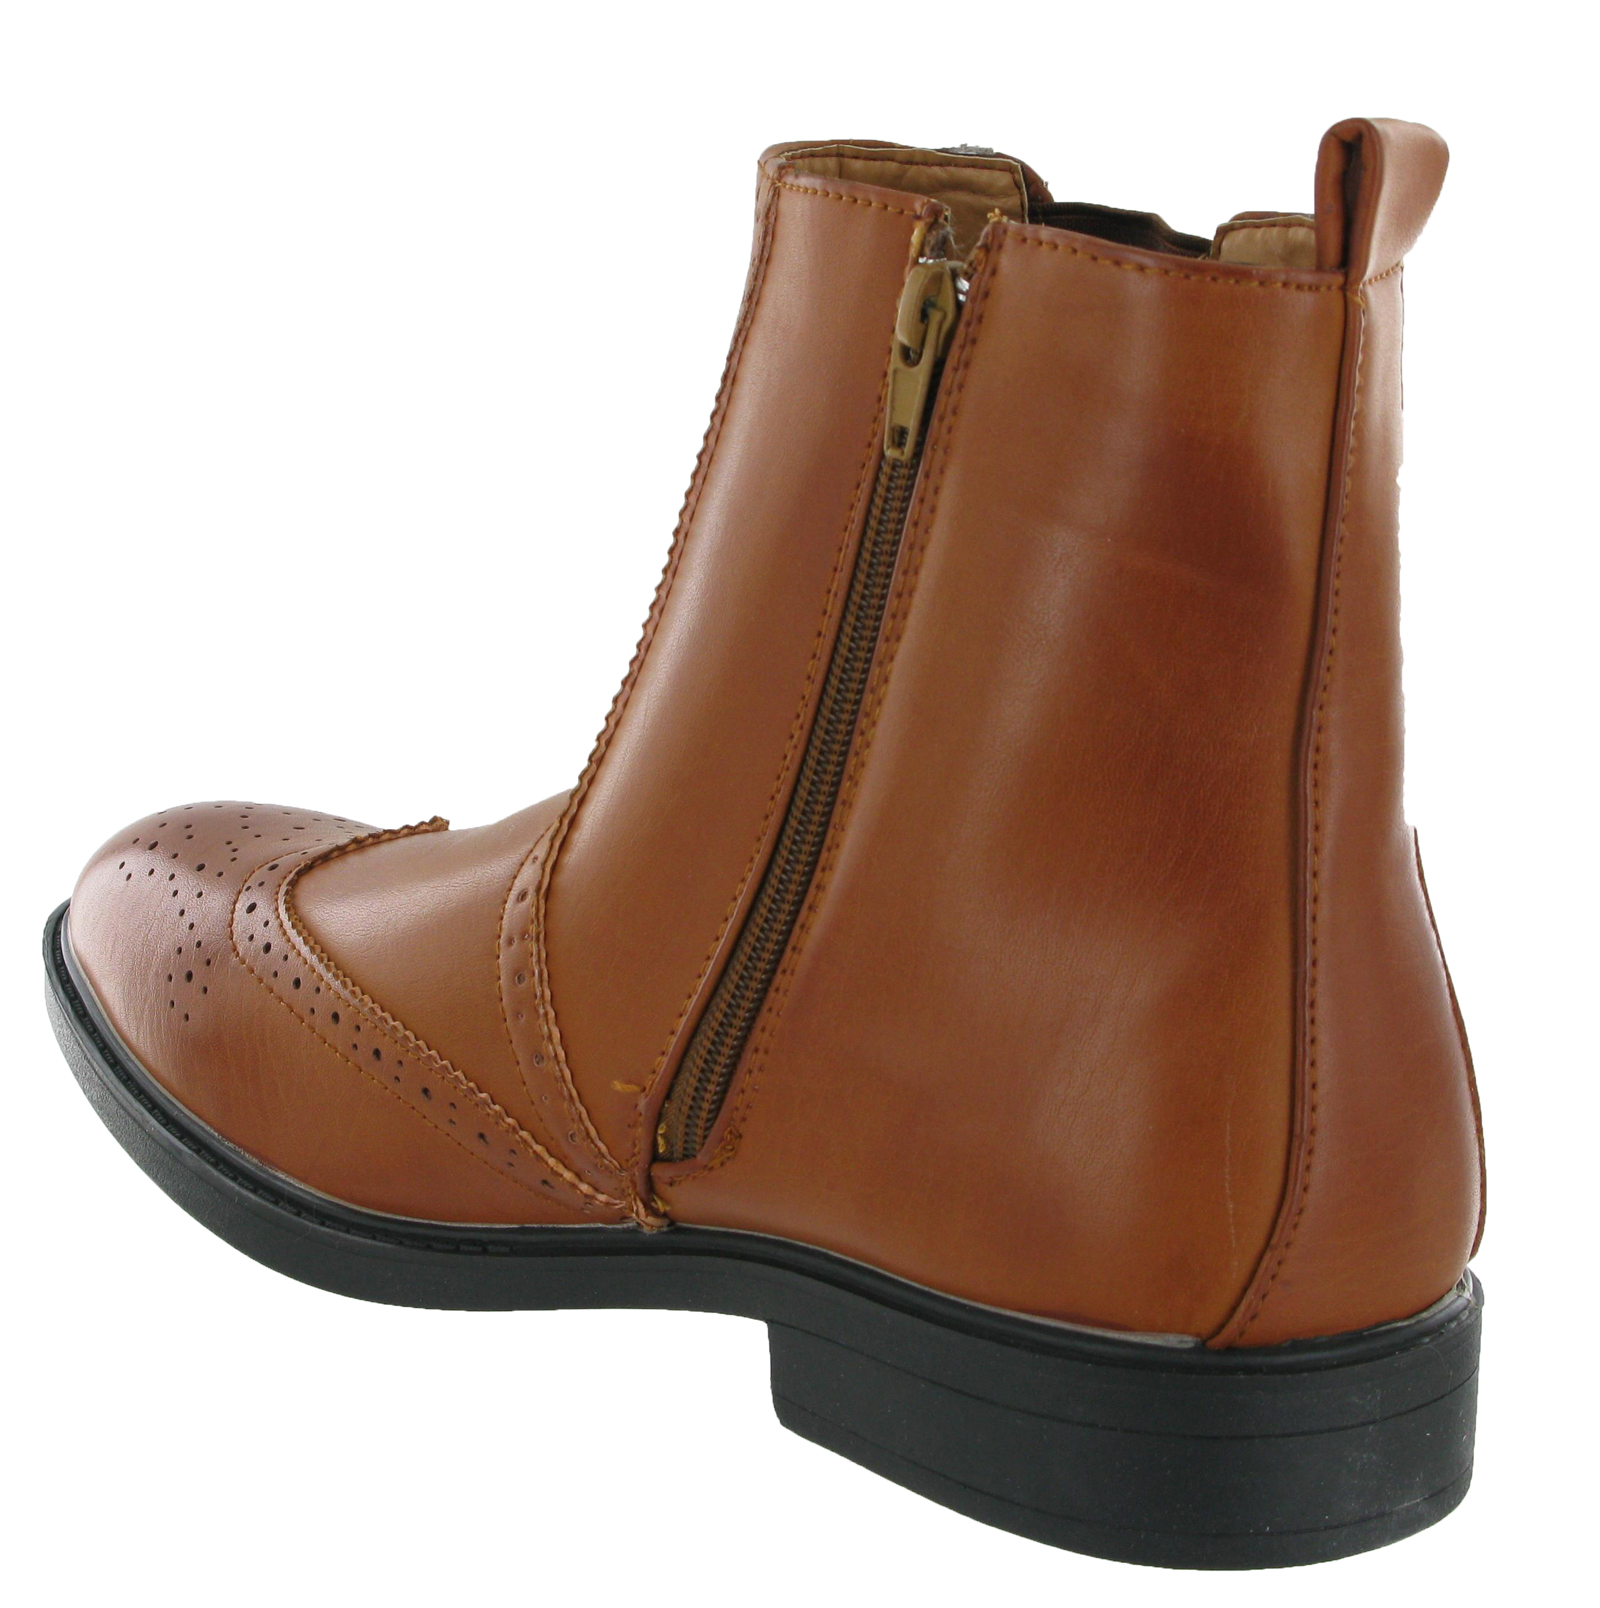 Mens Zip Up Boots - Cr Boot